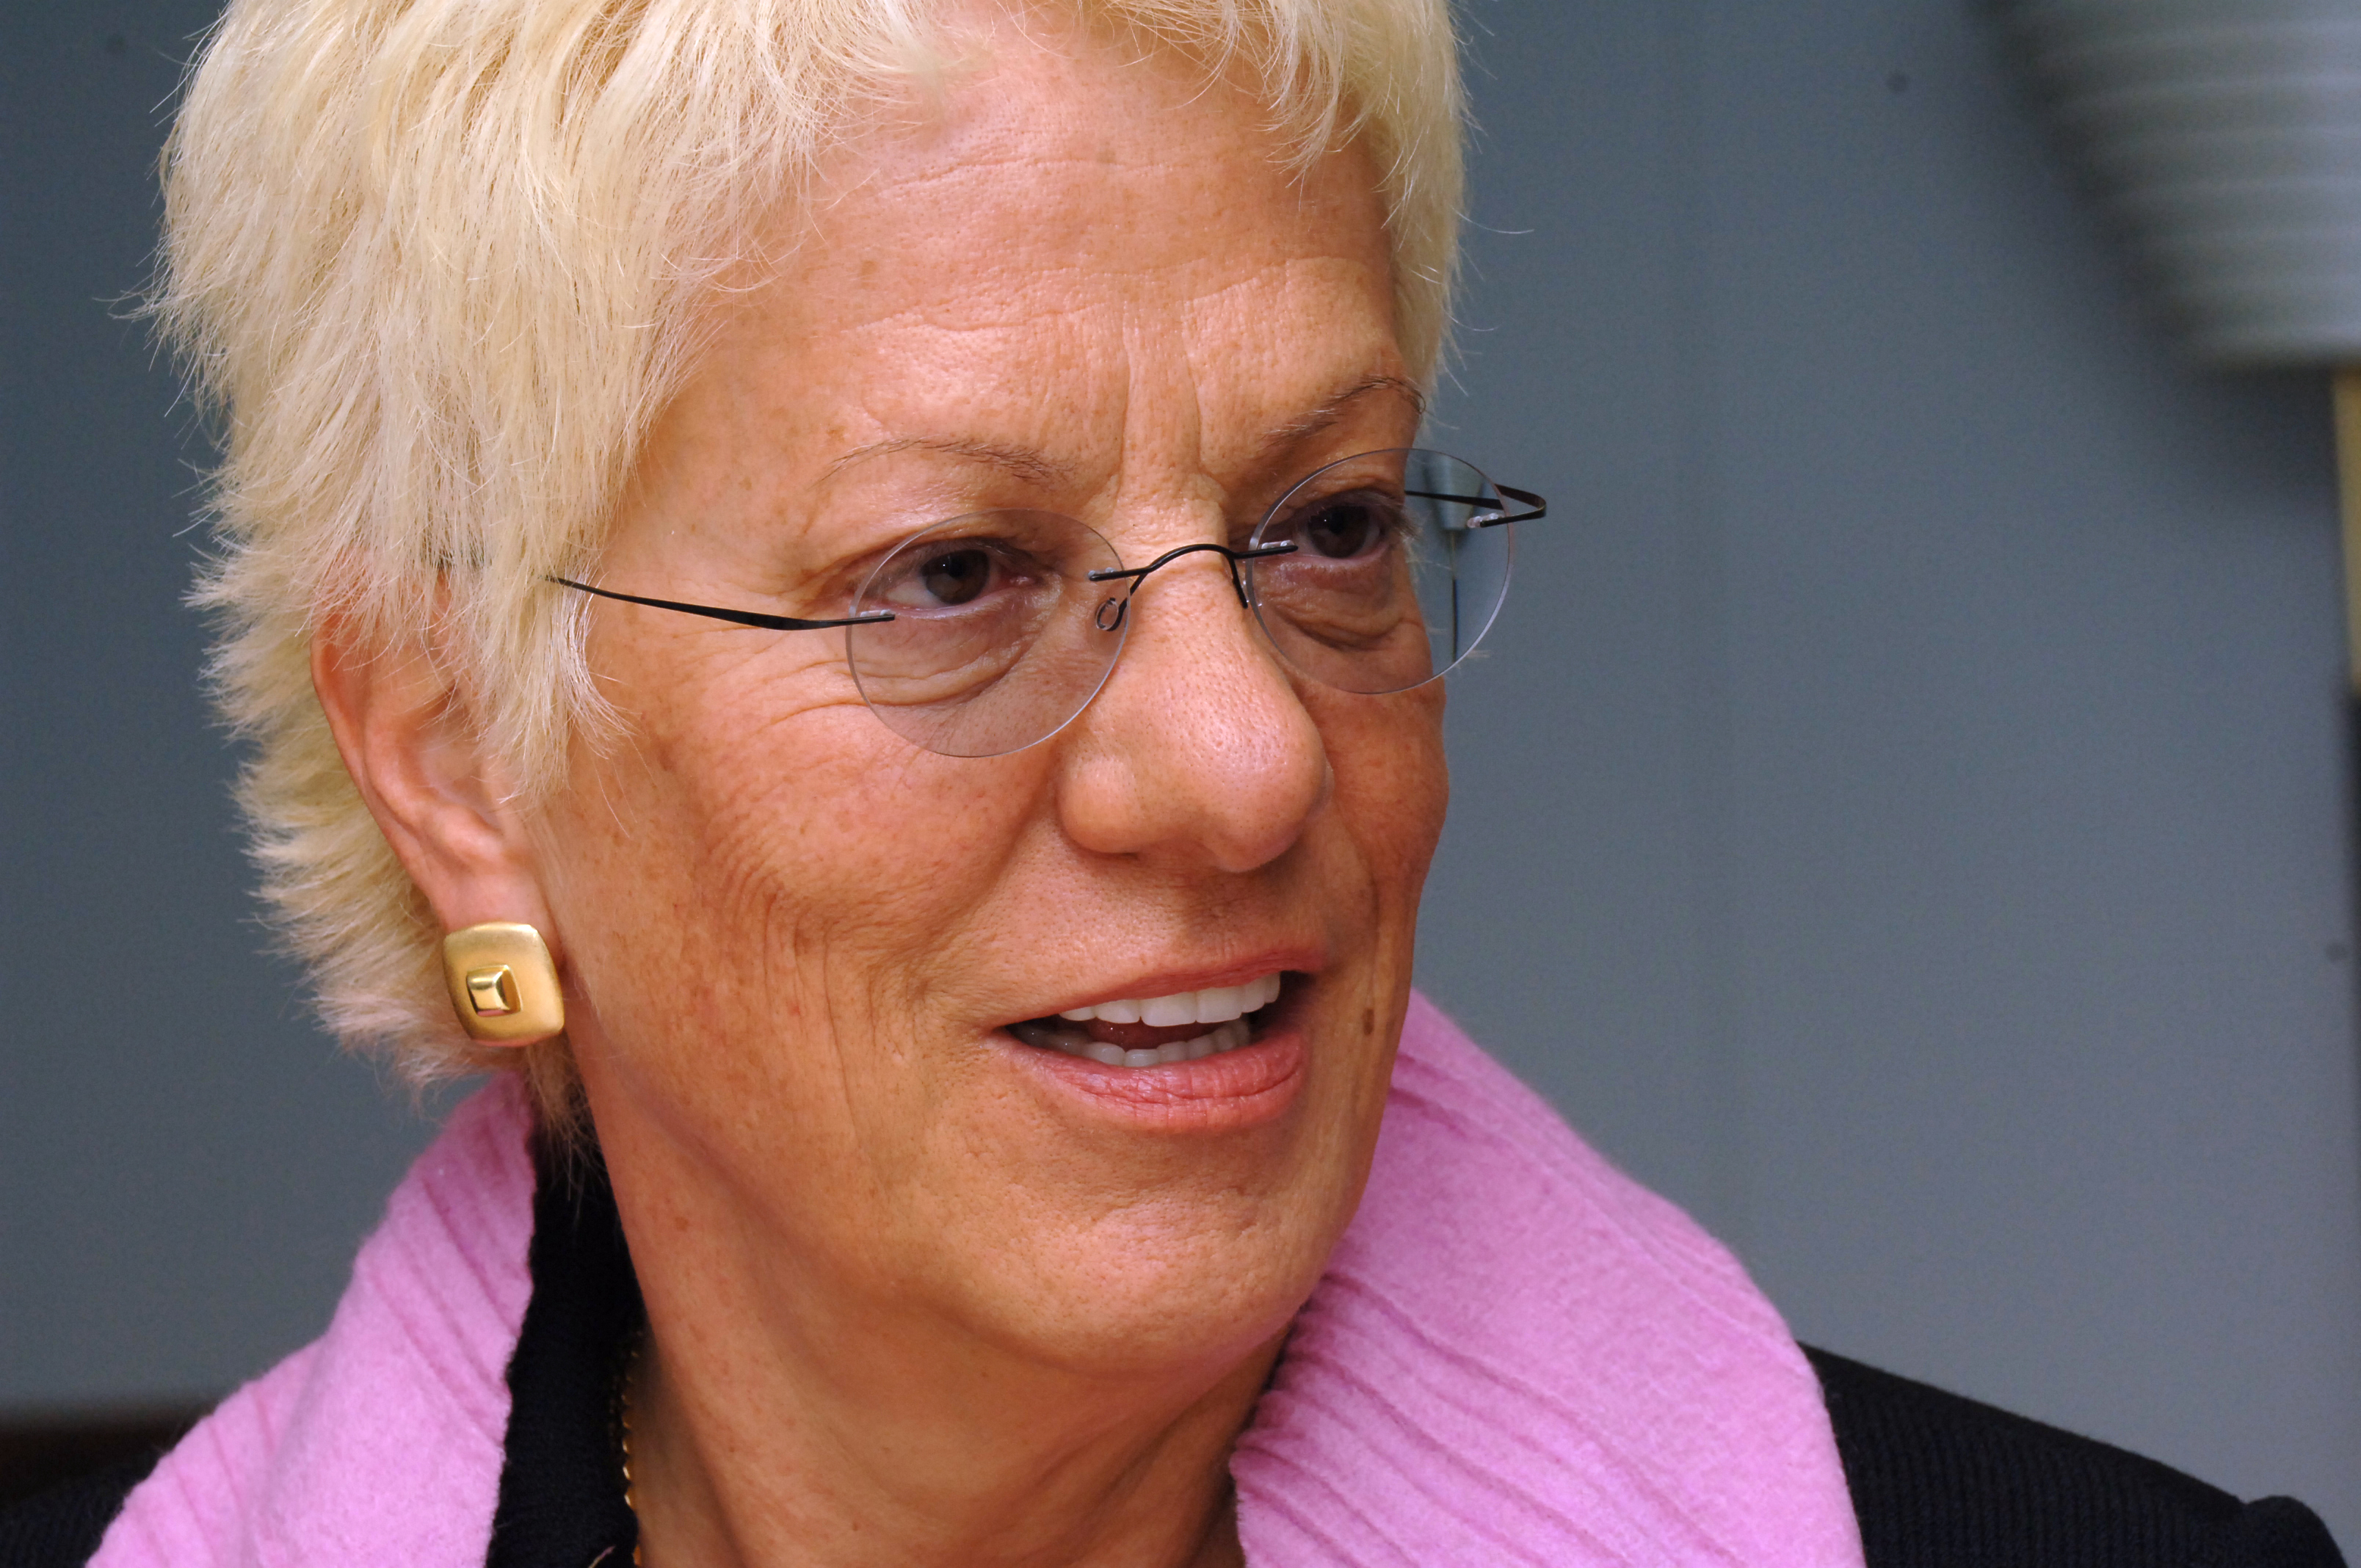 Visit by Carla Del Ponte, Prosecutor of the International Criminal Tribunal for the former Yugoslavia, to the EC